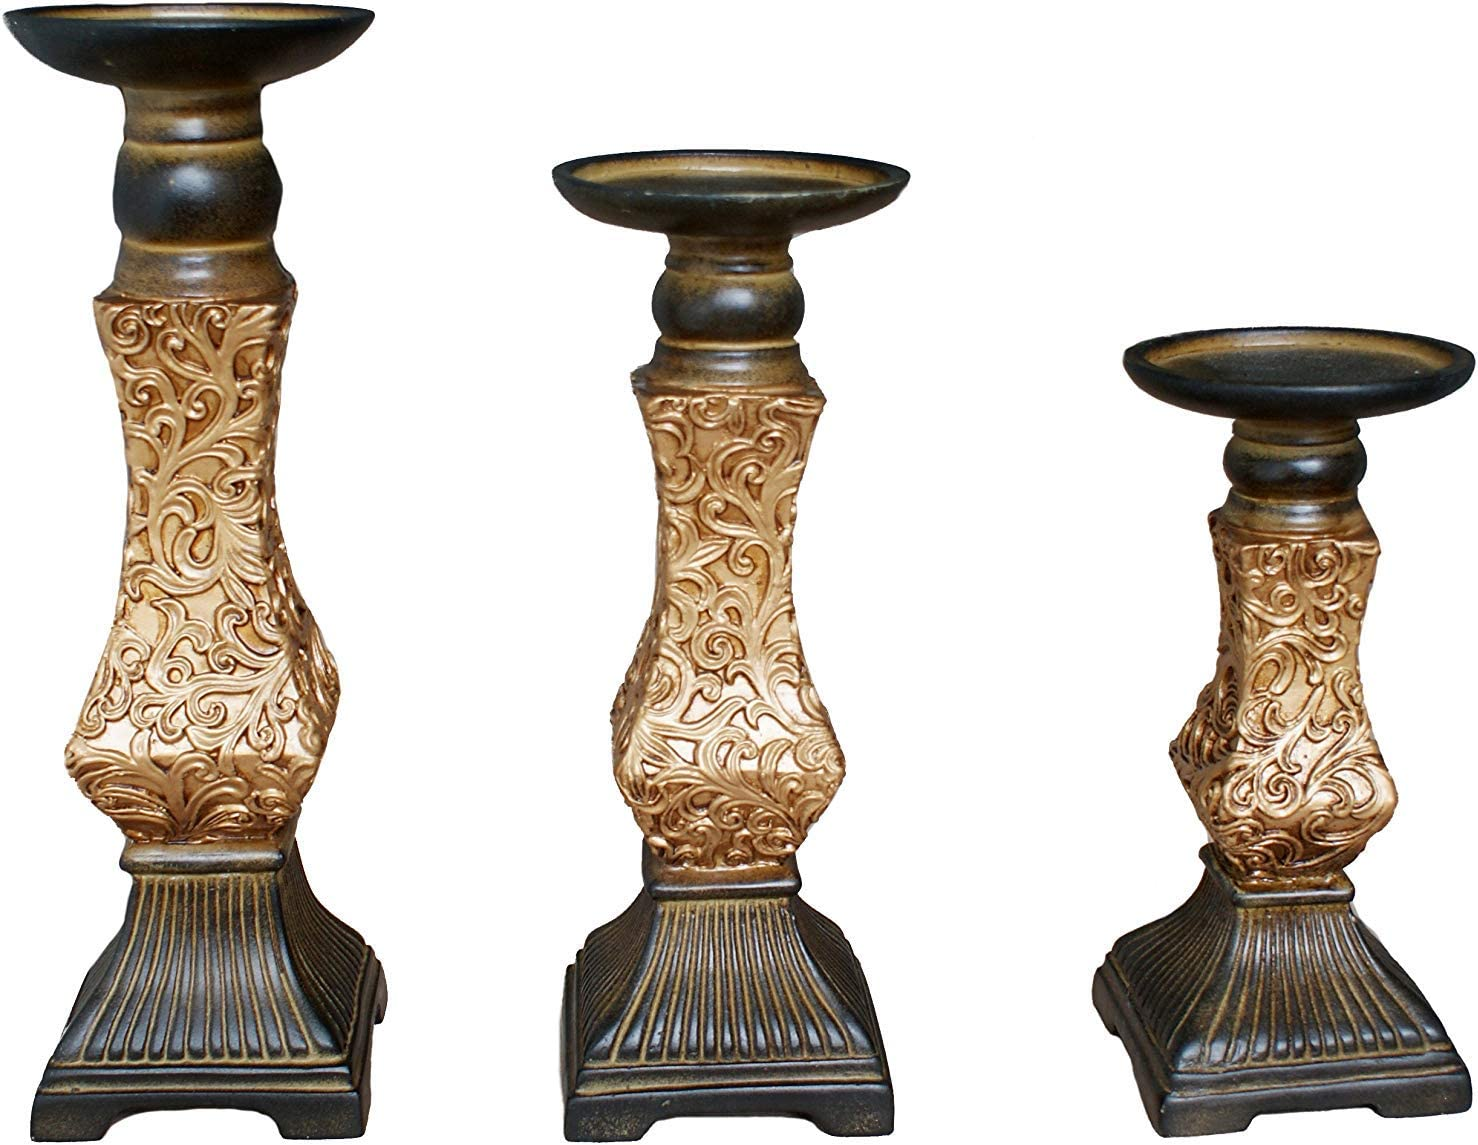 """G-mart Set of 3 Resin Pillar Candle Holders -12"""" H,10"""" H,8"""" H,Ideal for LED and Pillar Candles, Gifts for Wedding, Party, Home, Spa, Reiki, Aromatherapy, Votive Candle Gardens"""